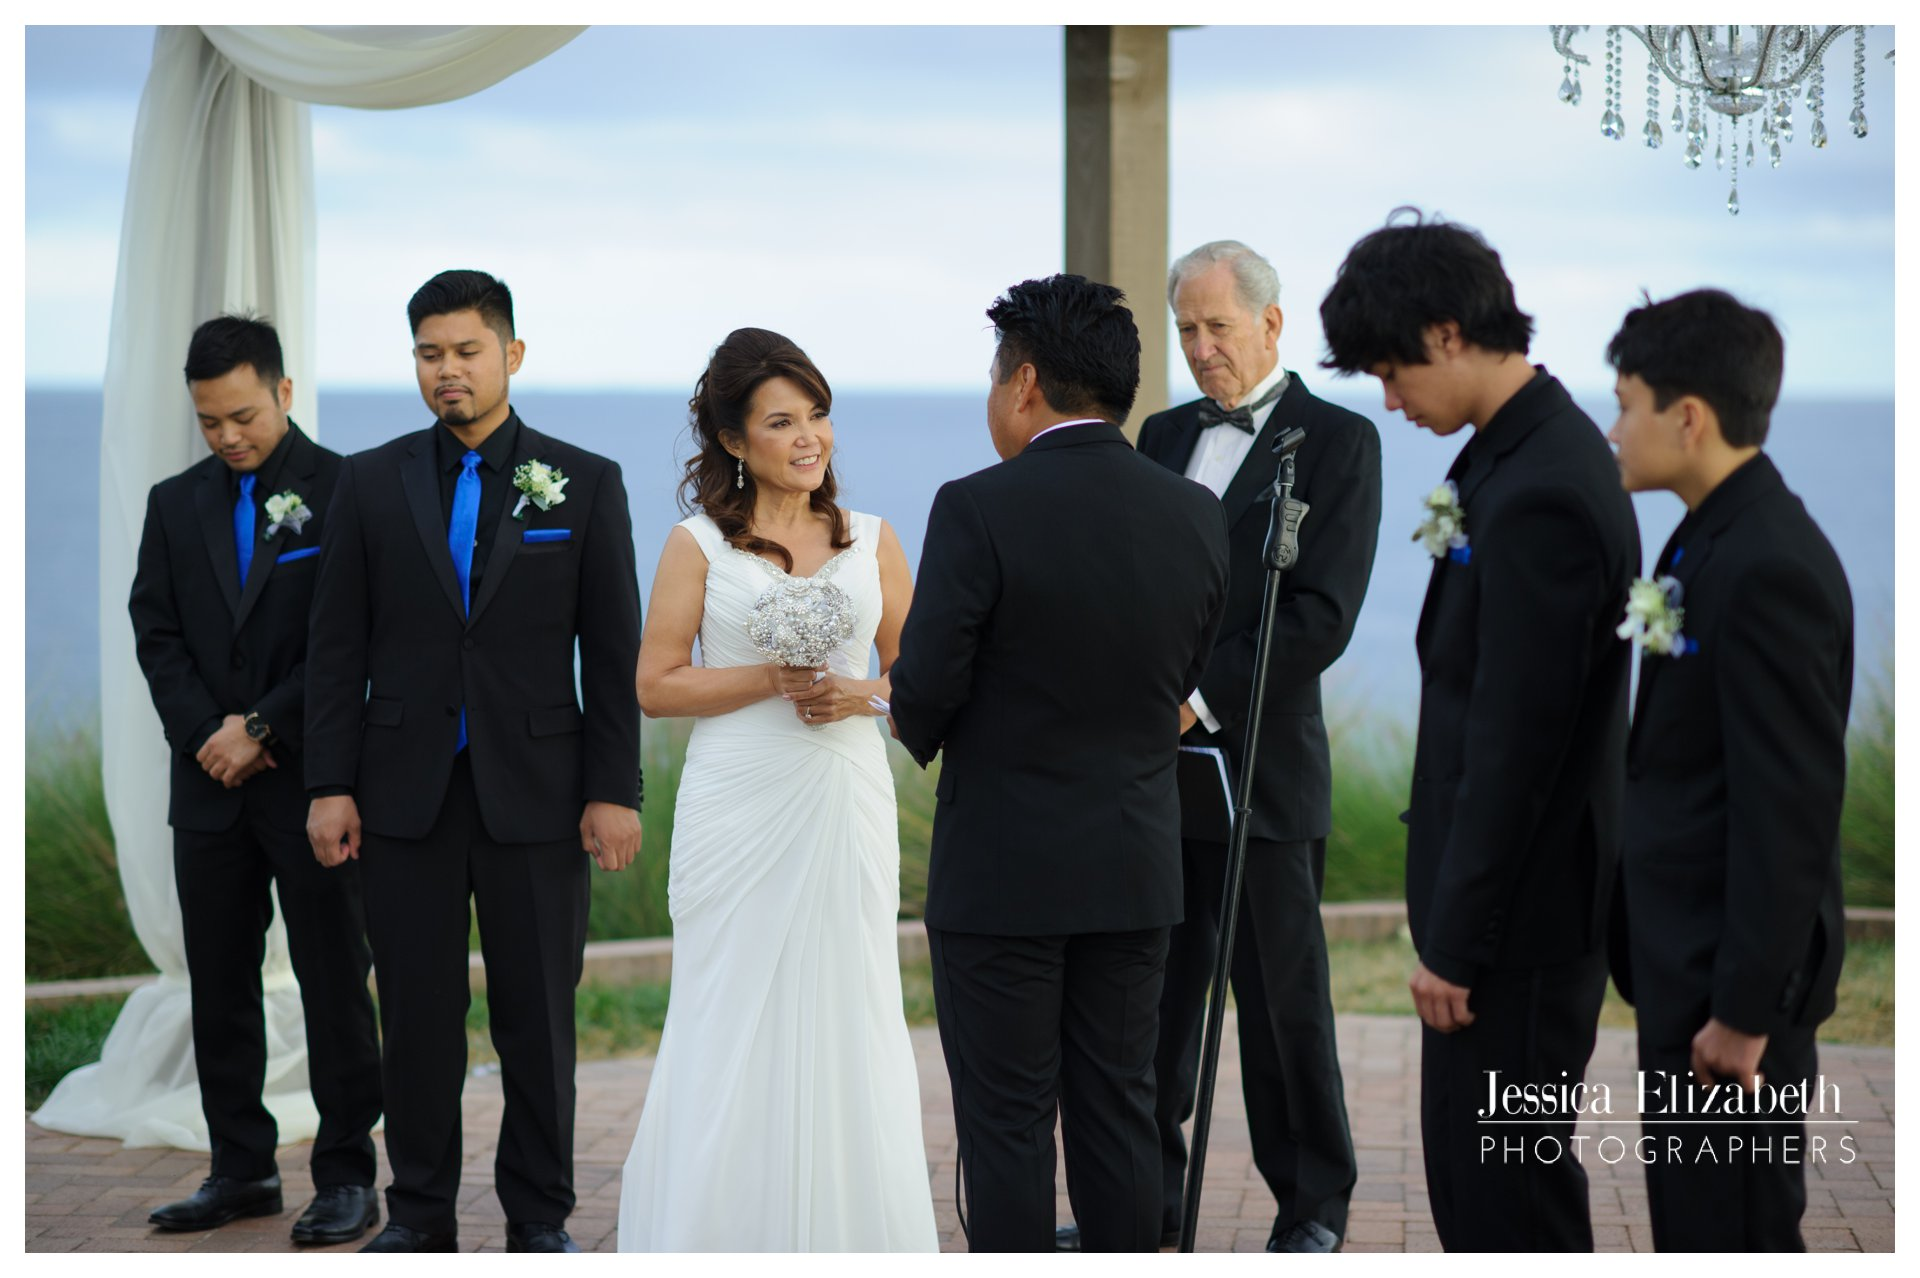 16-Terranea-Palos-Verdes-Wedding-Photography-by-Jessica-Elizabeth-w.jpg